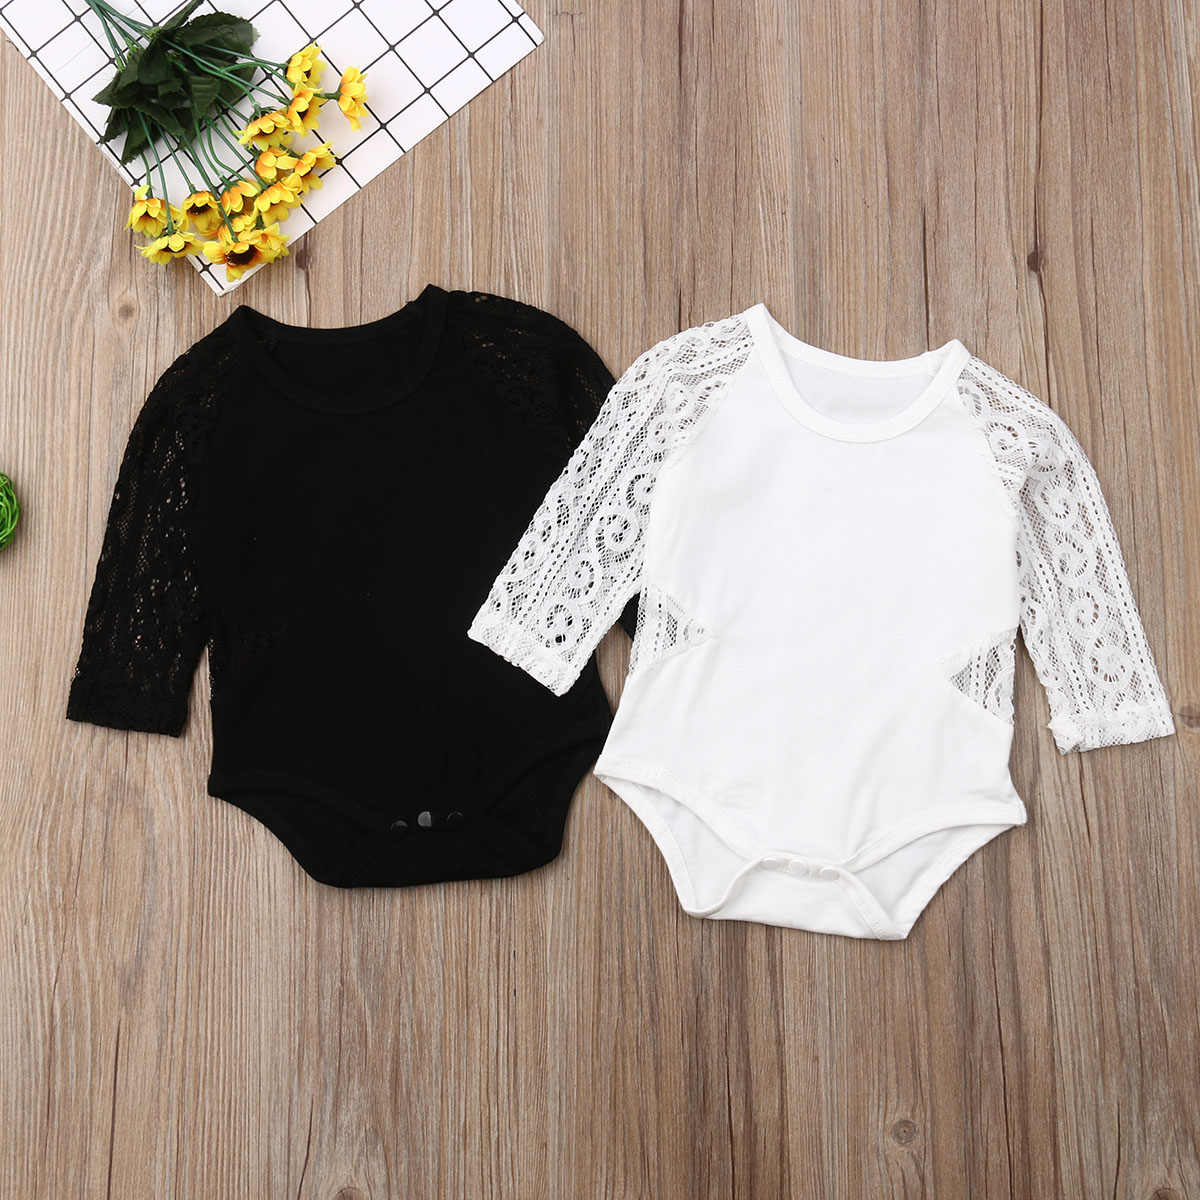 0-18M Newborn Baby Girl Long Sleeve Lace Romper Solid Infant Baby Jumpsuit Playsuit Baby Girl Costumes  Autumn New